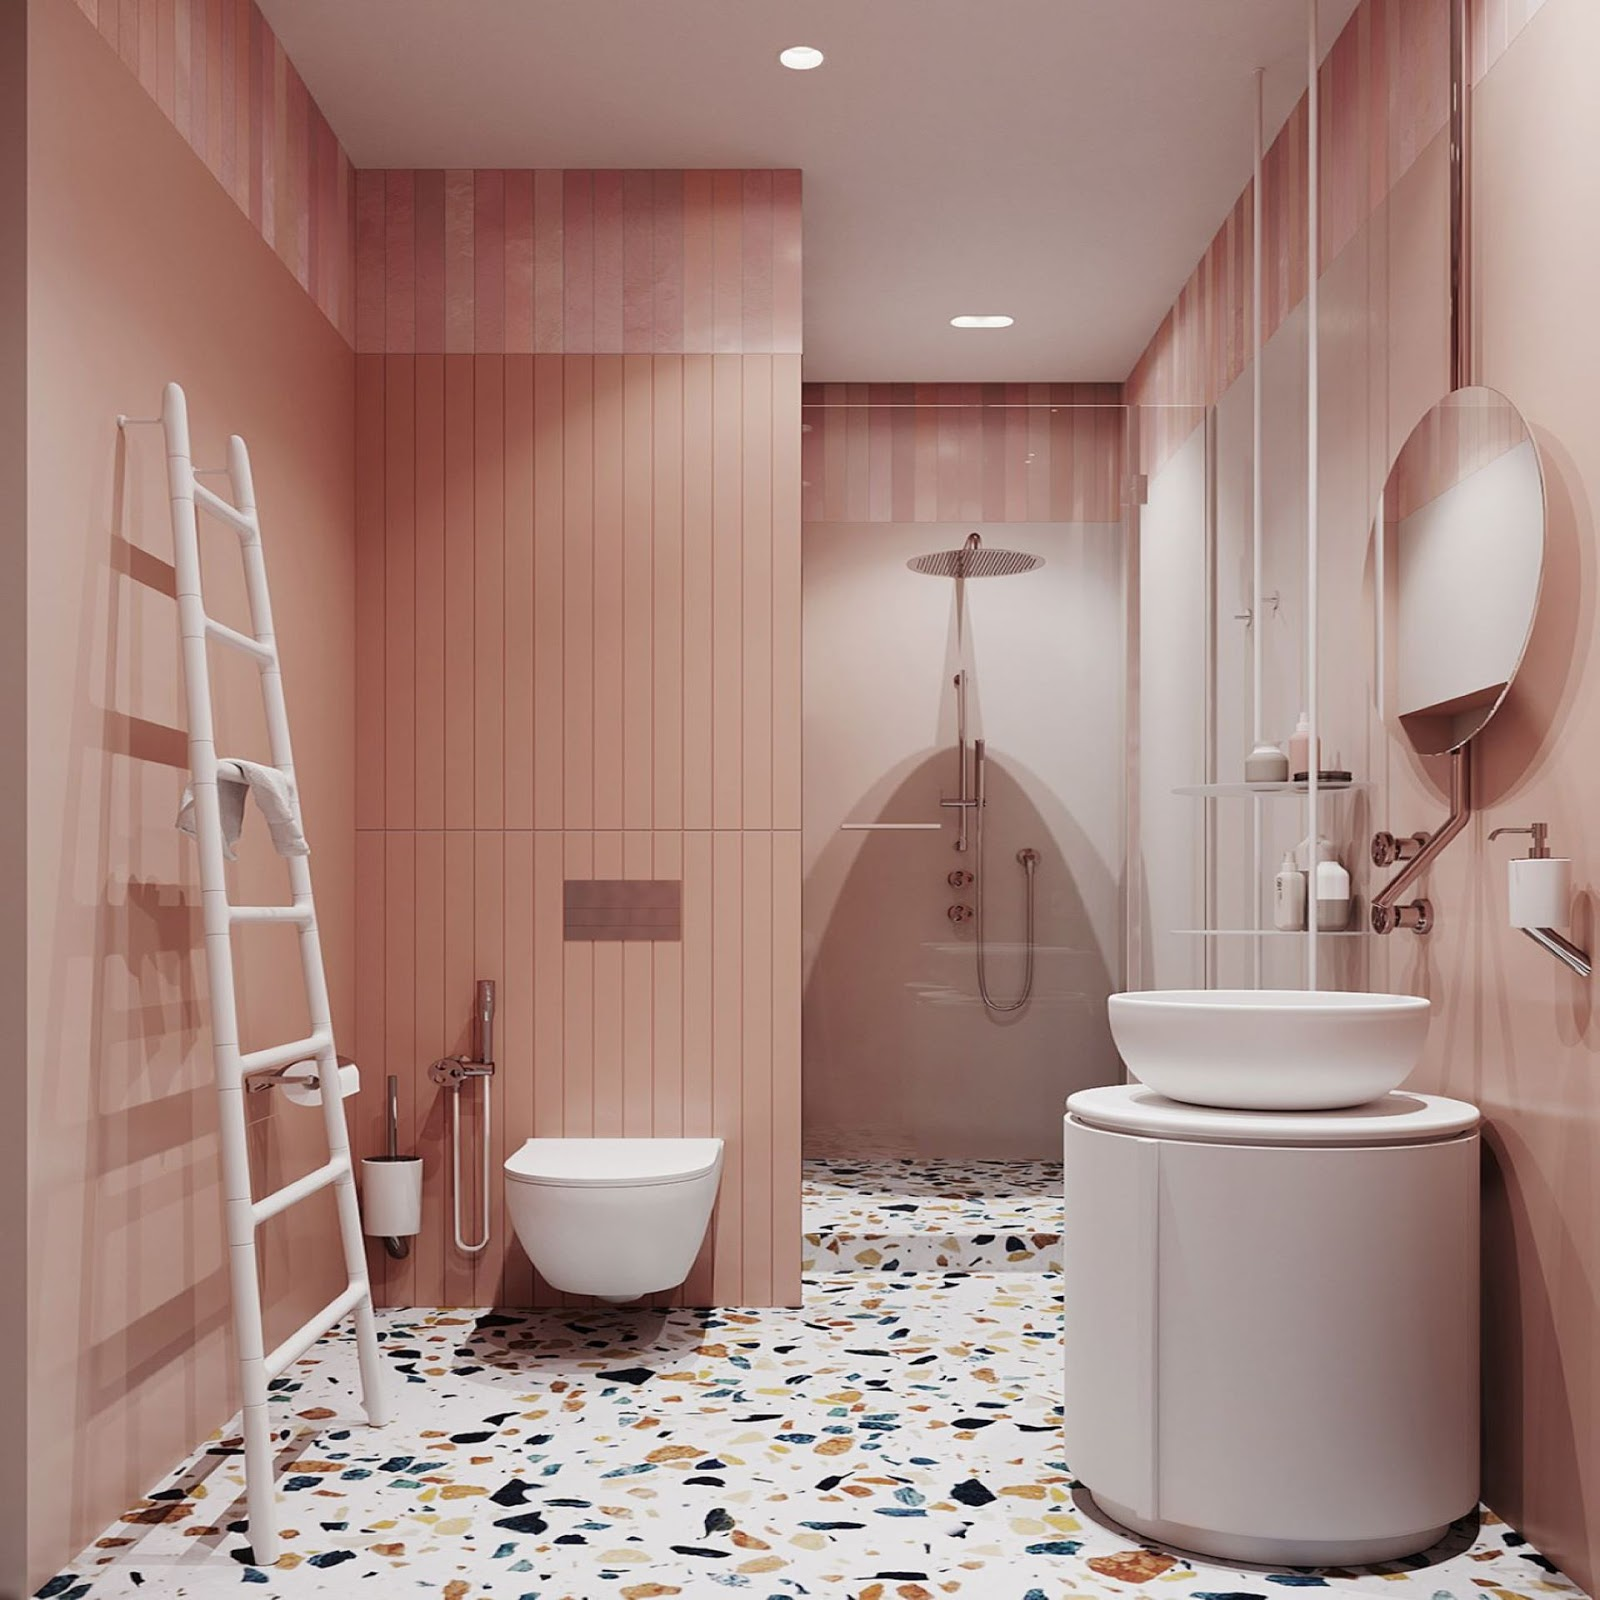 Coral pink vertical shiplap paired with Terrazzo flooring in a modernized Retro bathroom